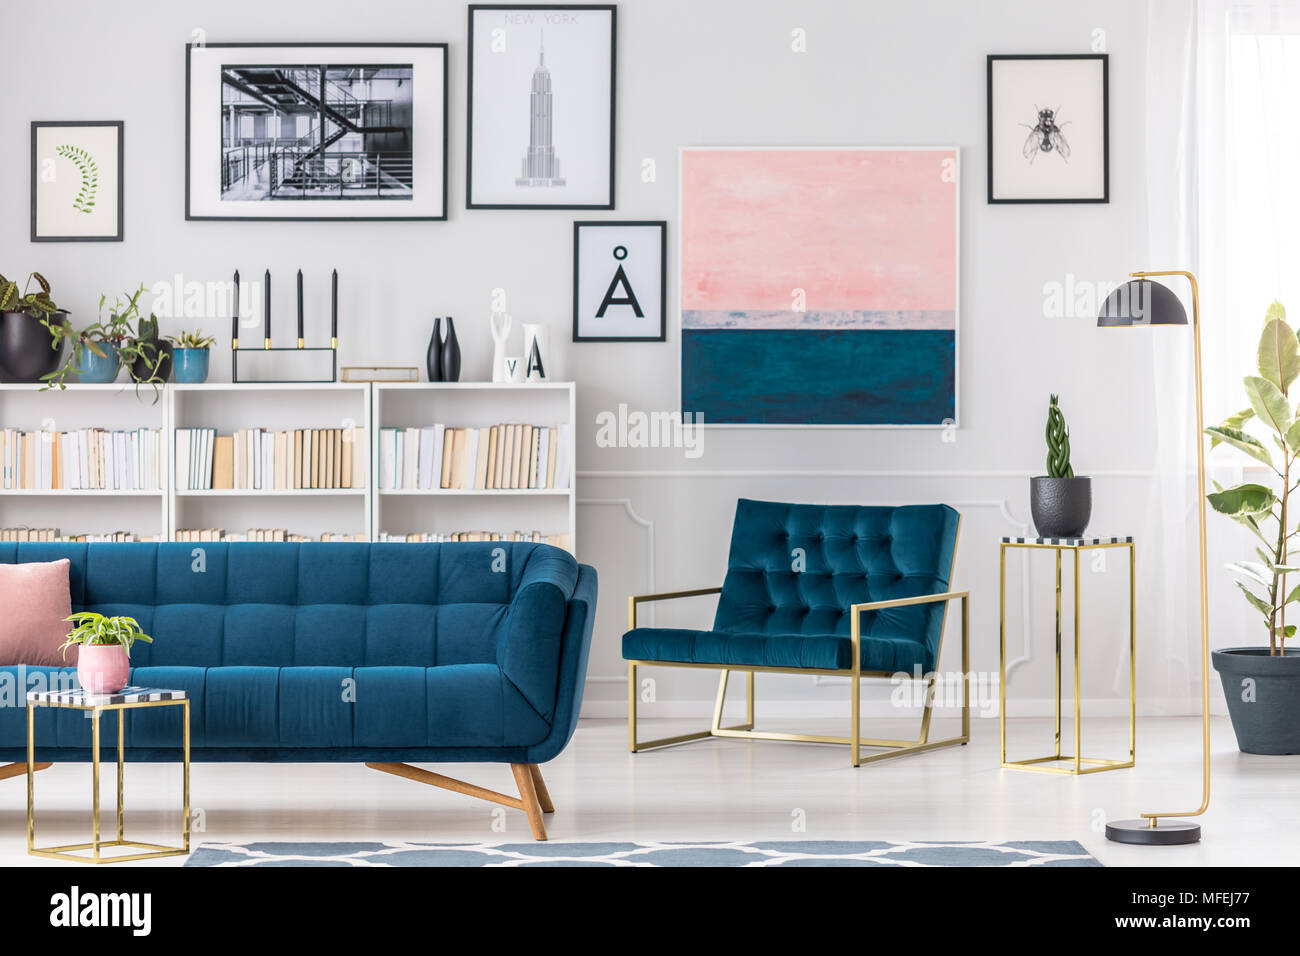 Pleasant Modern Living Room Interior With Blue Couch Armchair Short Links Chair Design For Home Short Linksinfo